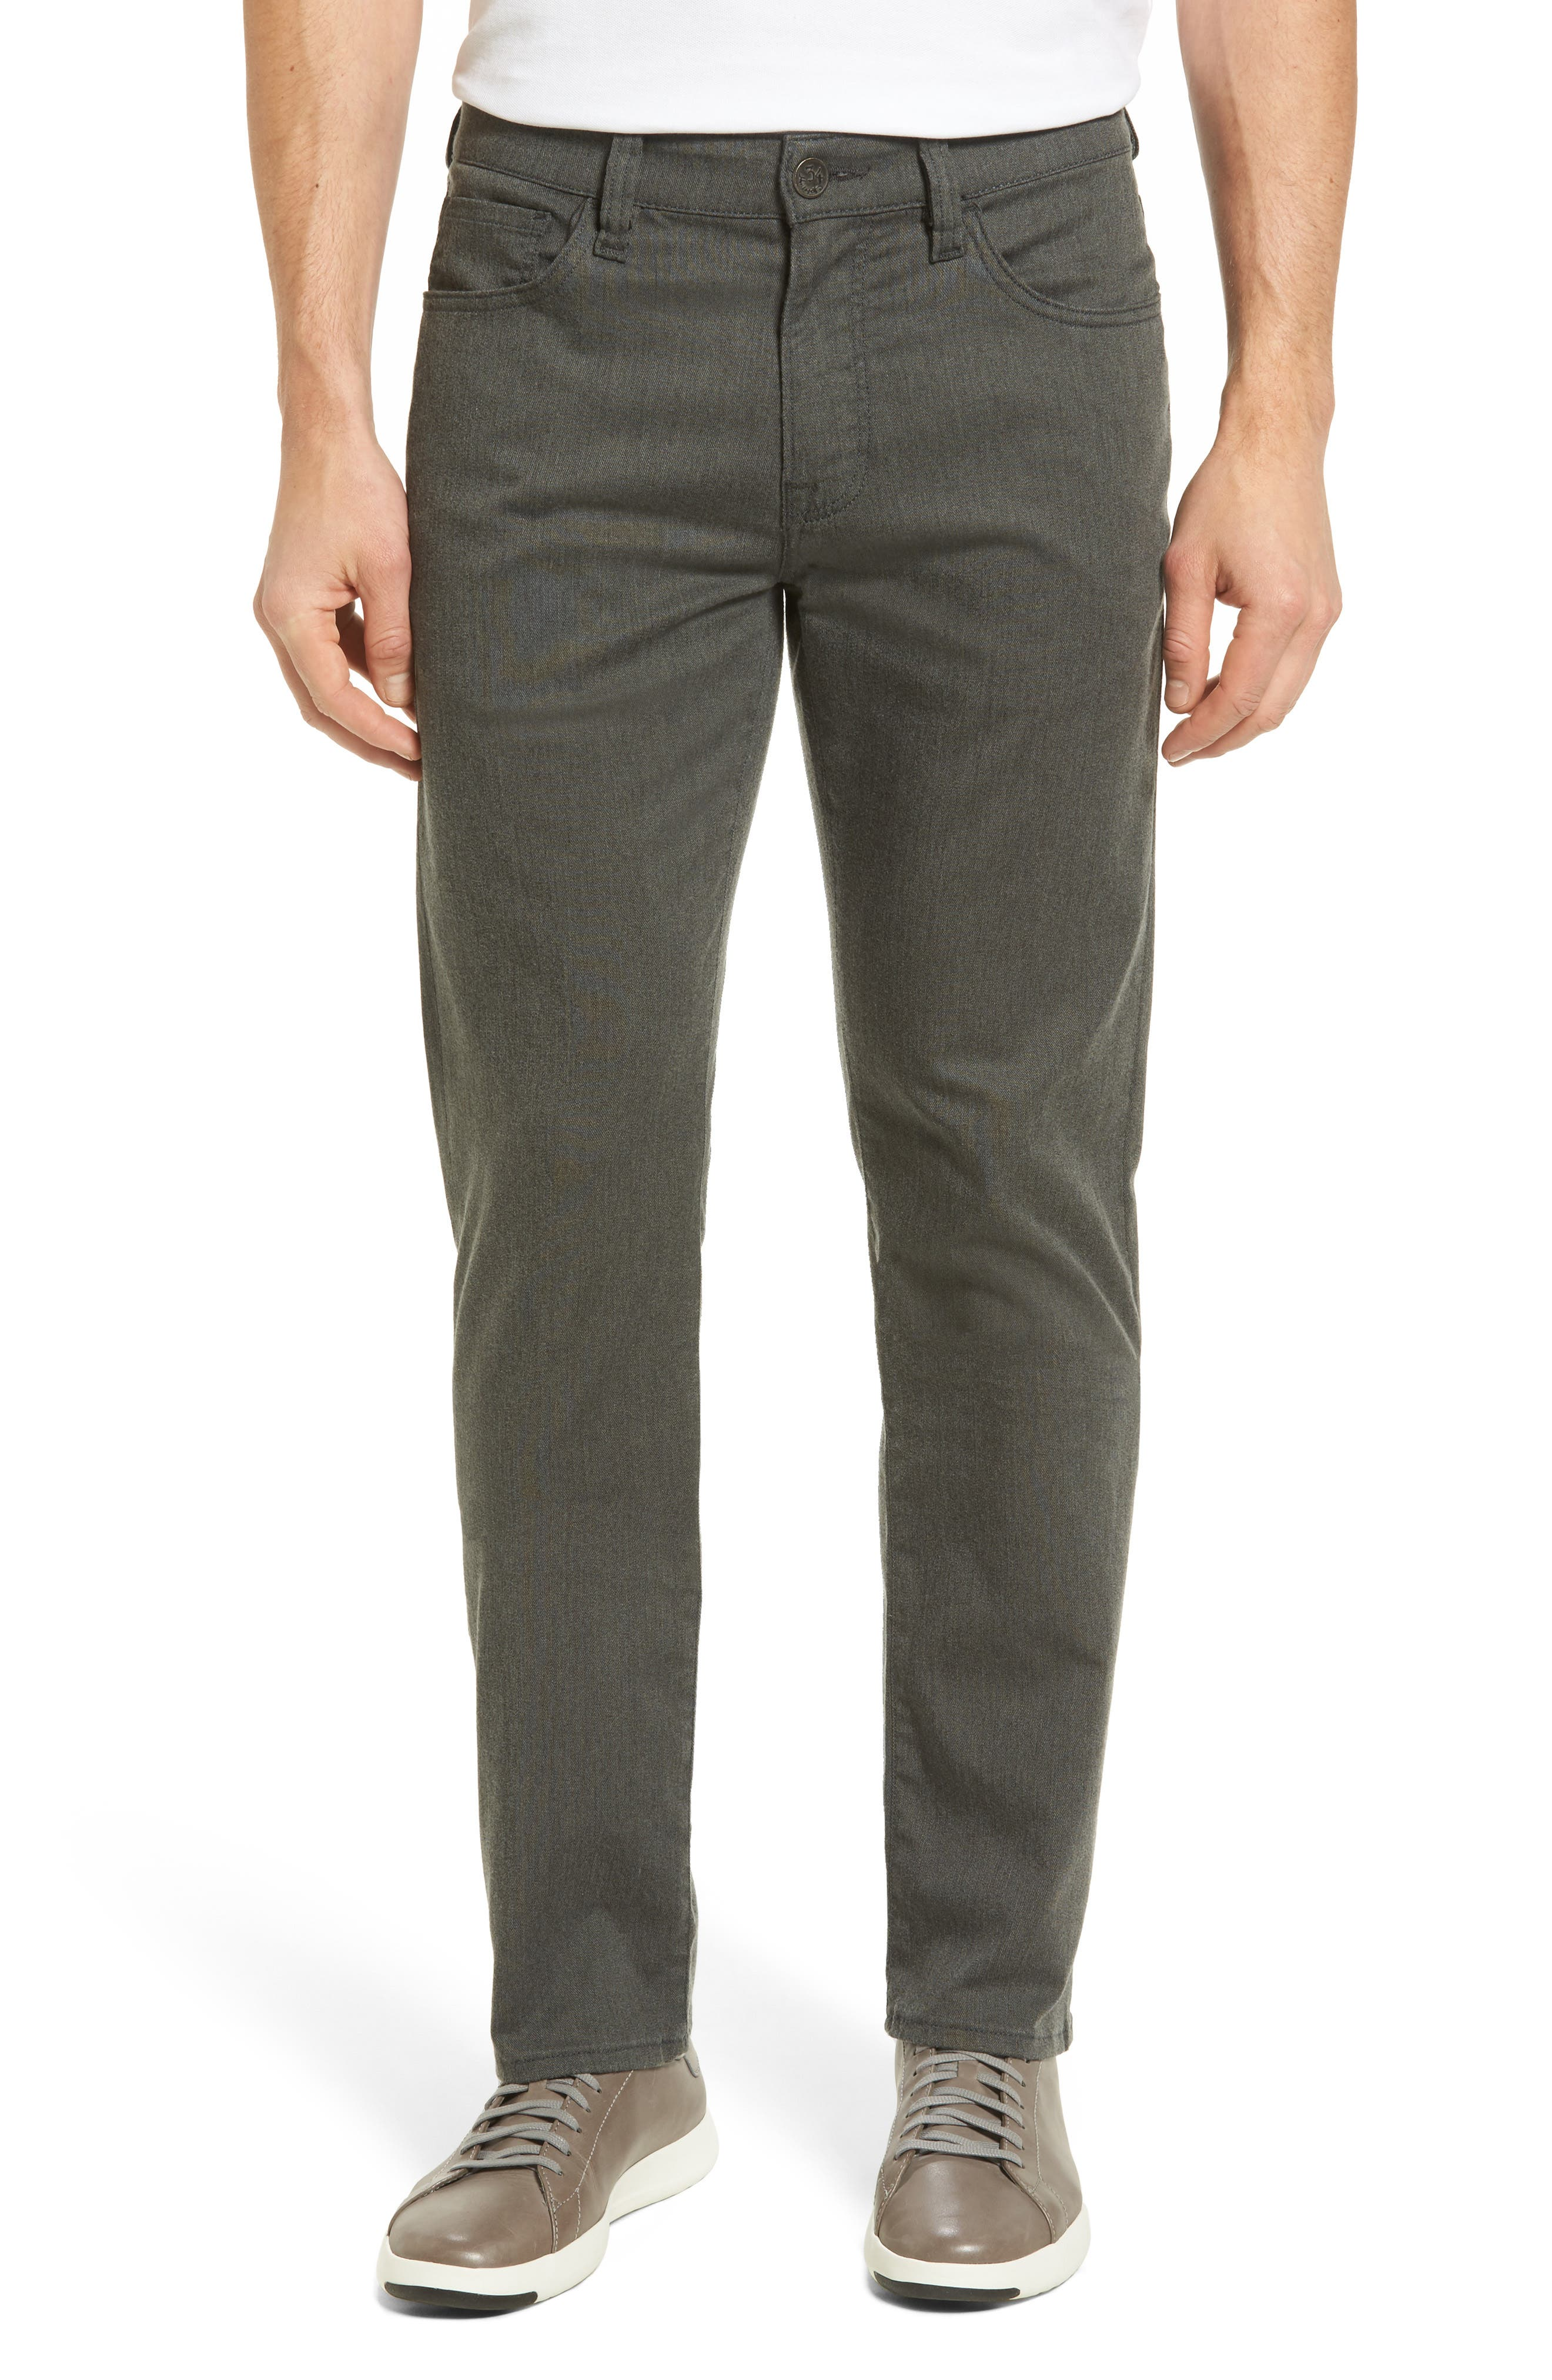 34 HERITAGE Courage Straight Leg Jeans, Main, color, 020